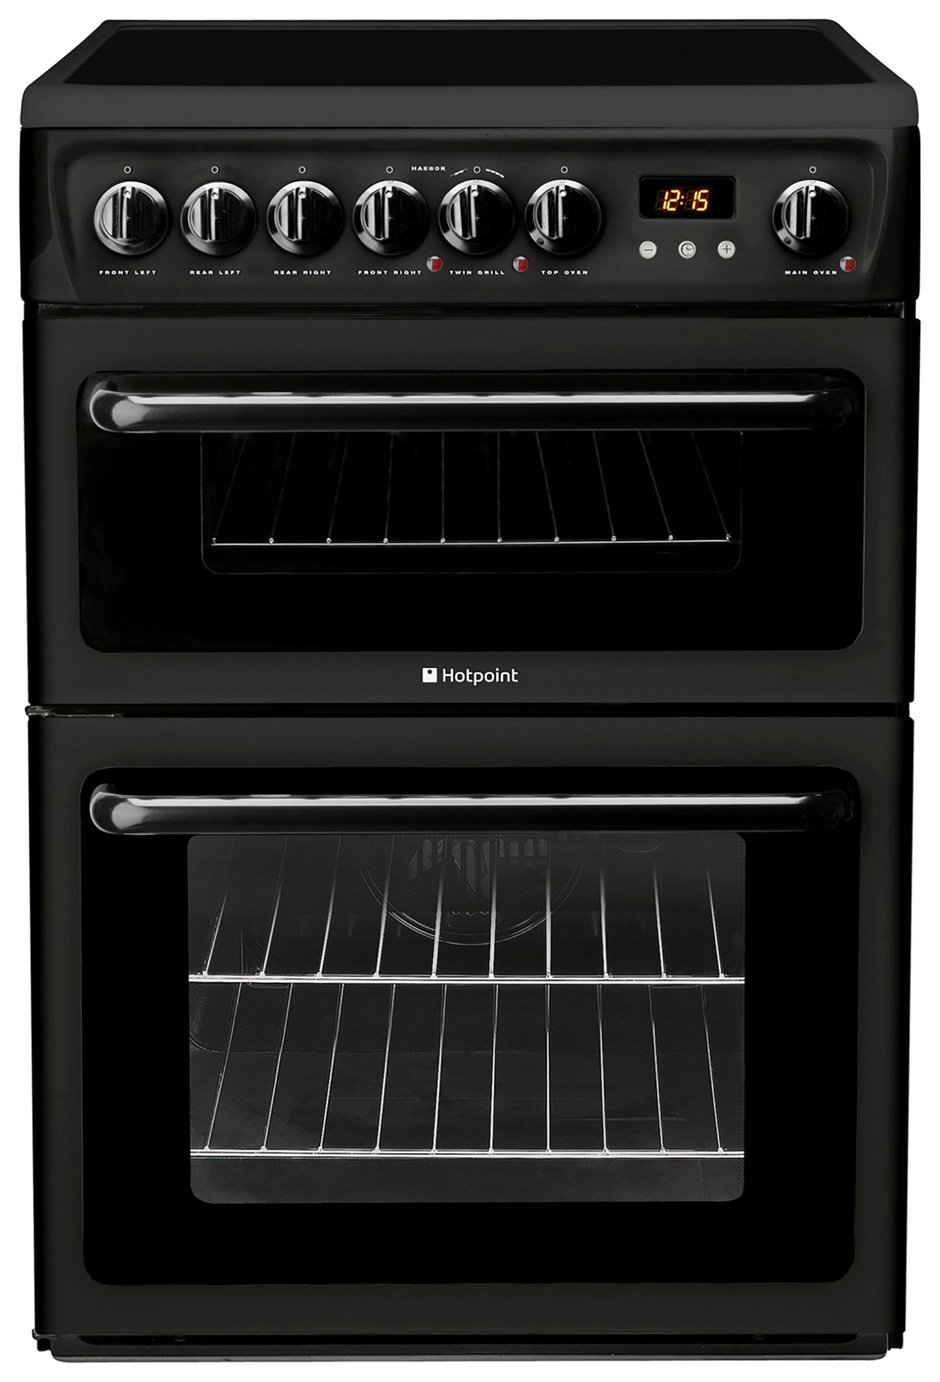 Hotpoint HAE60K 60cm Double Oven Electric Cooker - Black Best Price, Cheapest Prices